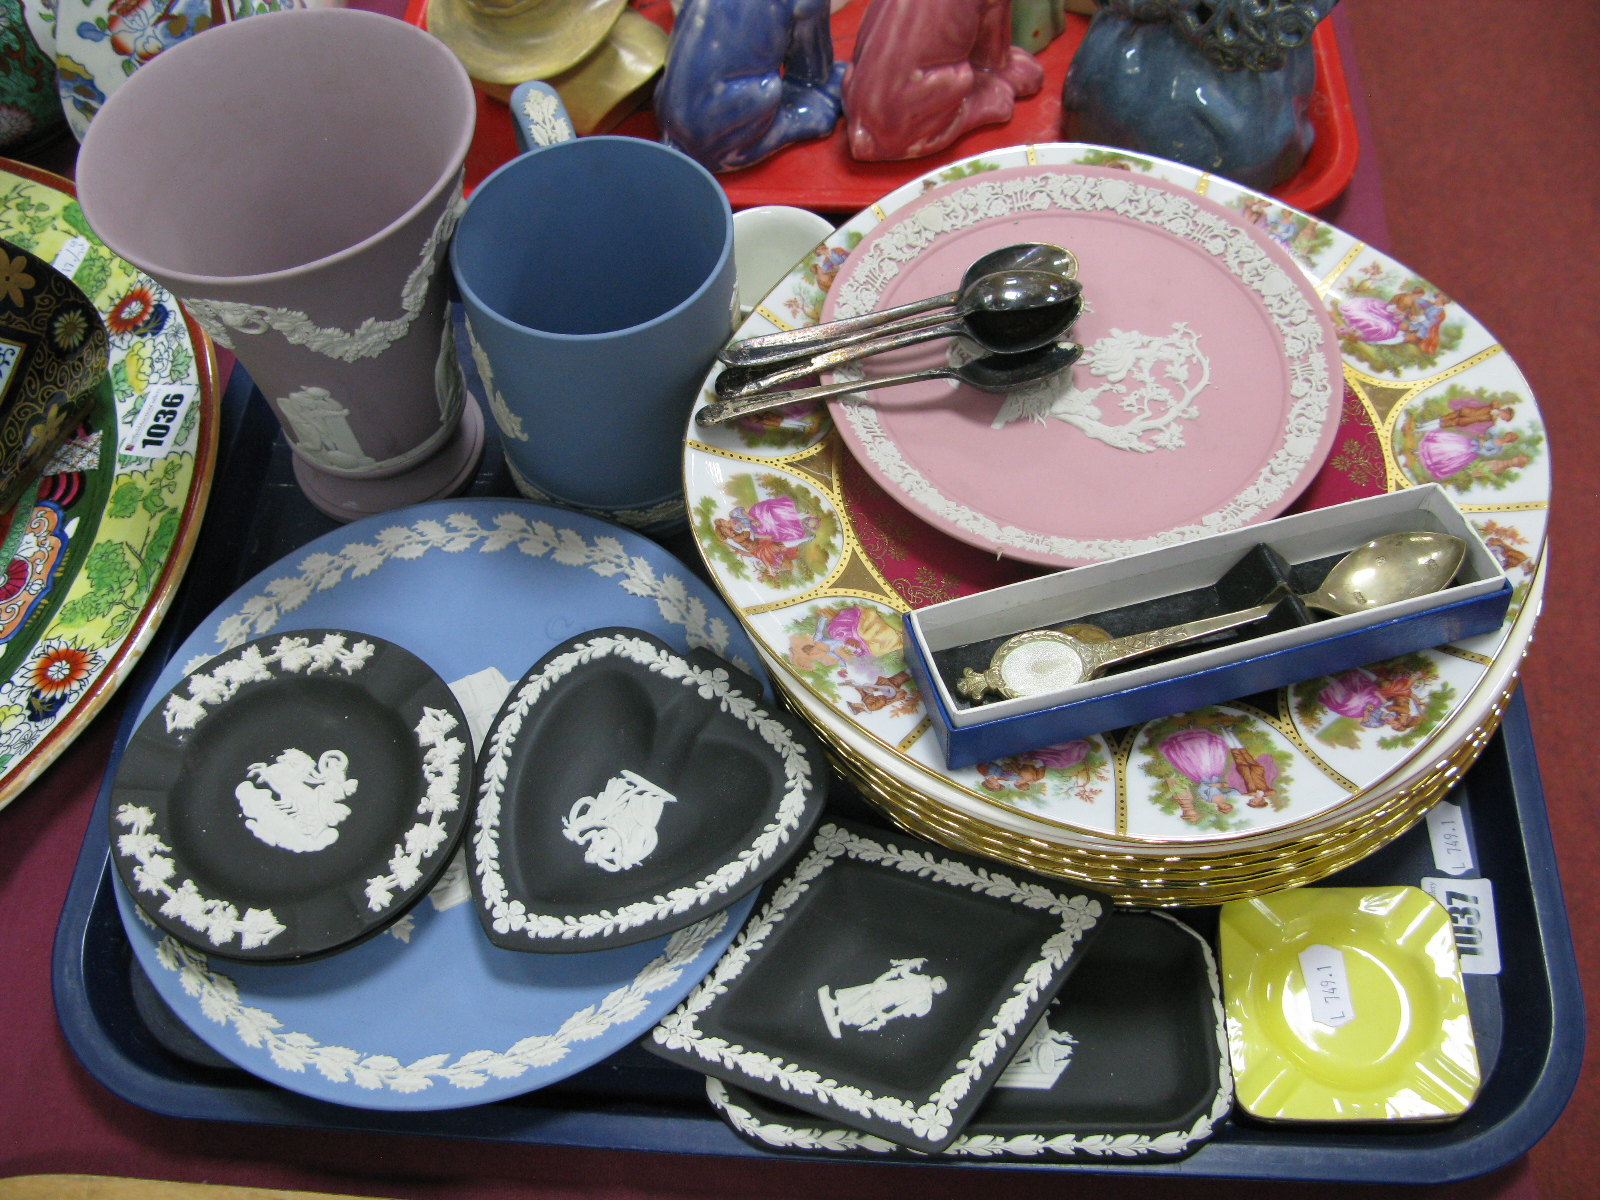 Lot 1037 - Wedgwood Jasperware, cabinet plates, pin dishes, vase, tankard etc in powder pink, blue and black,